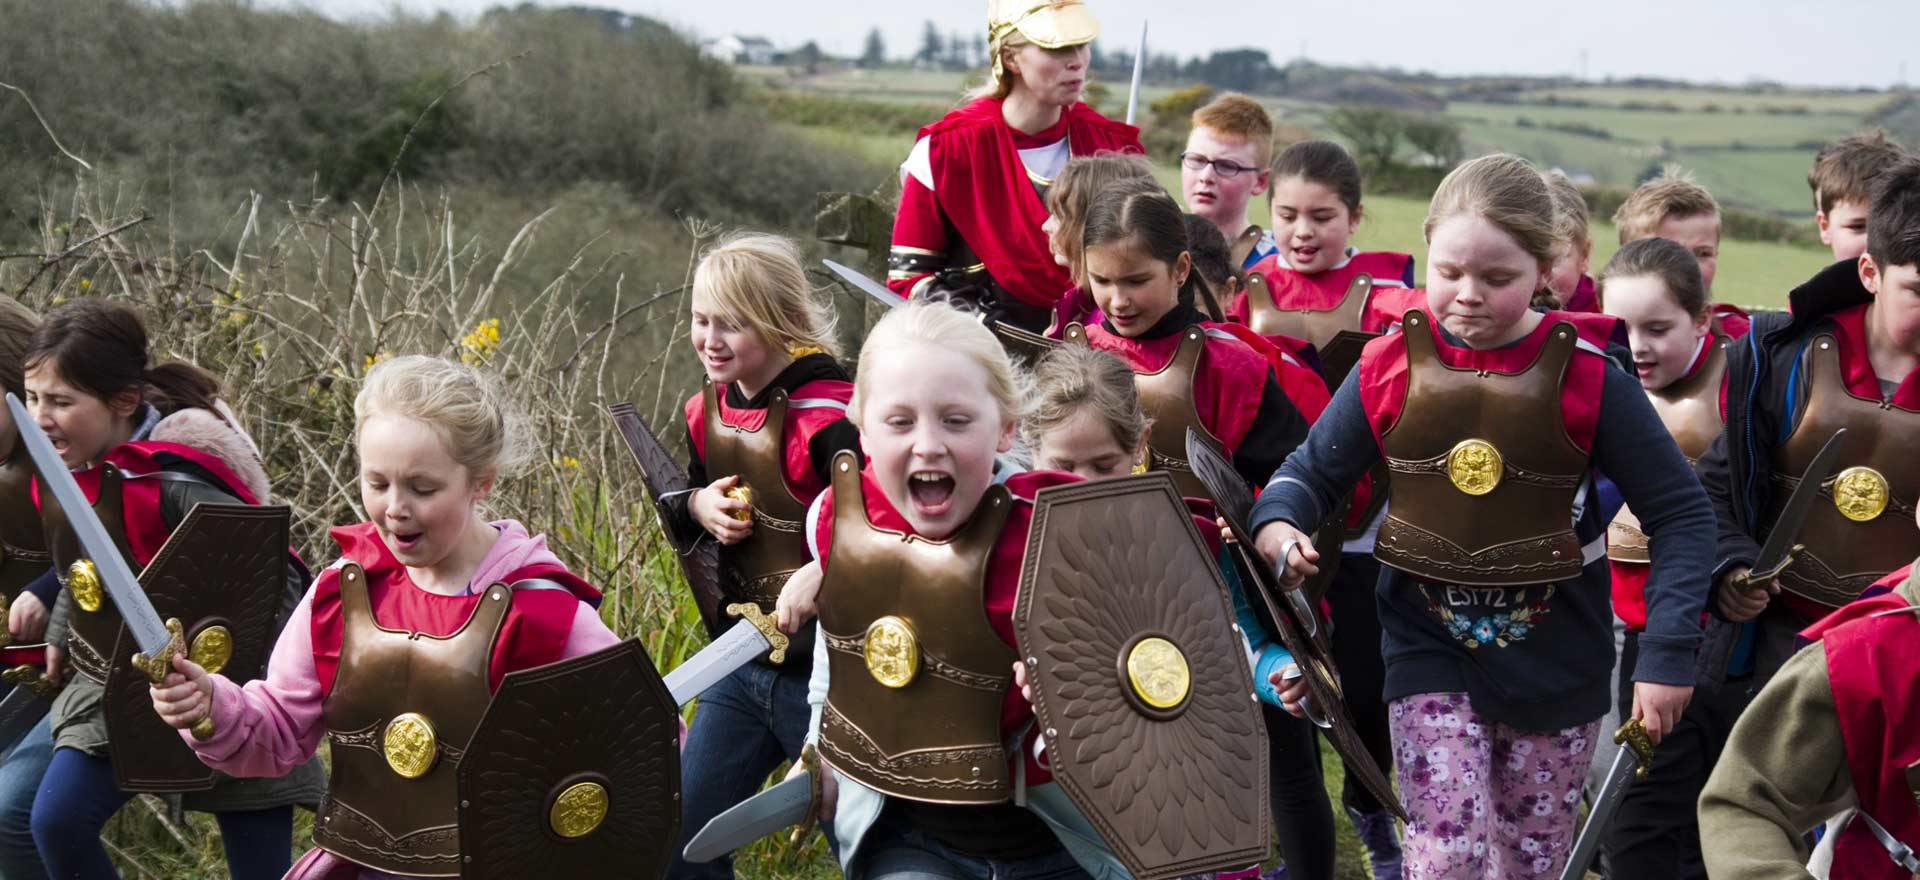 Trevithick Roman Battle